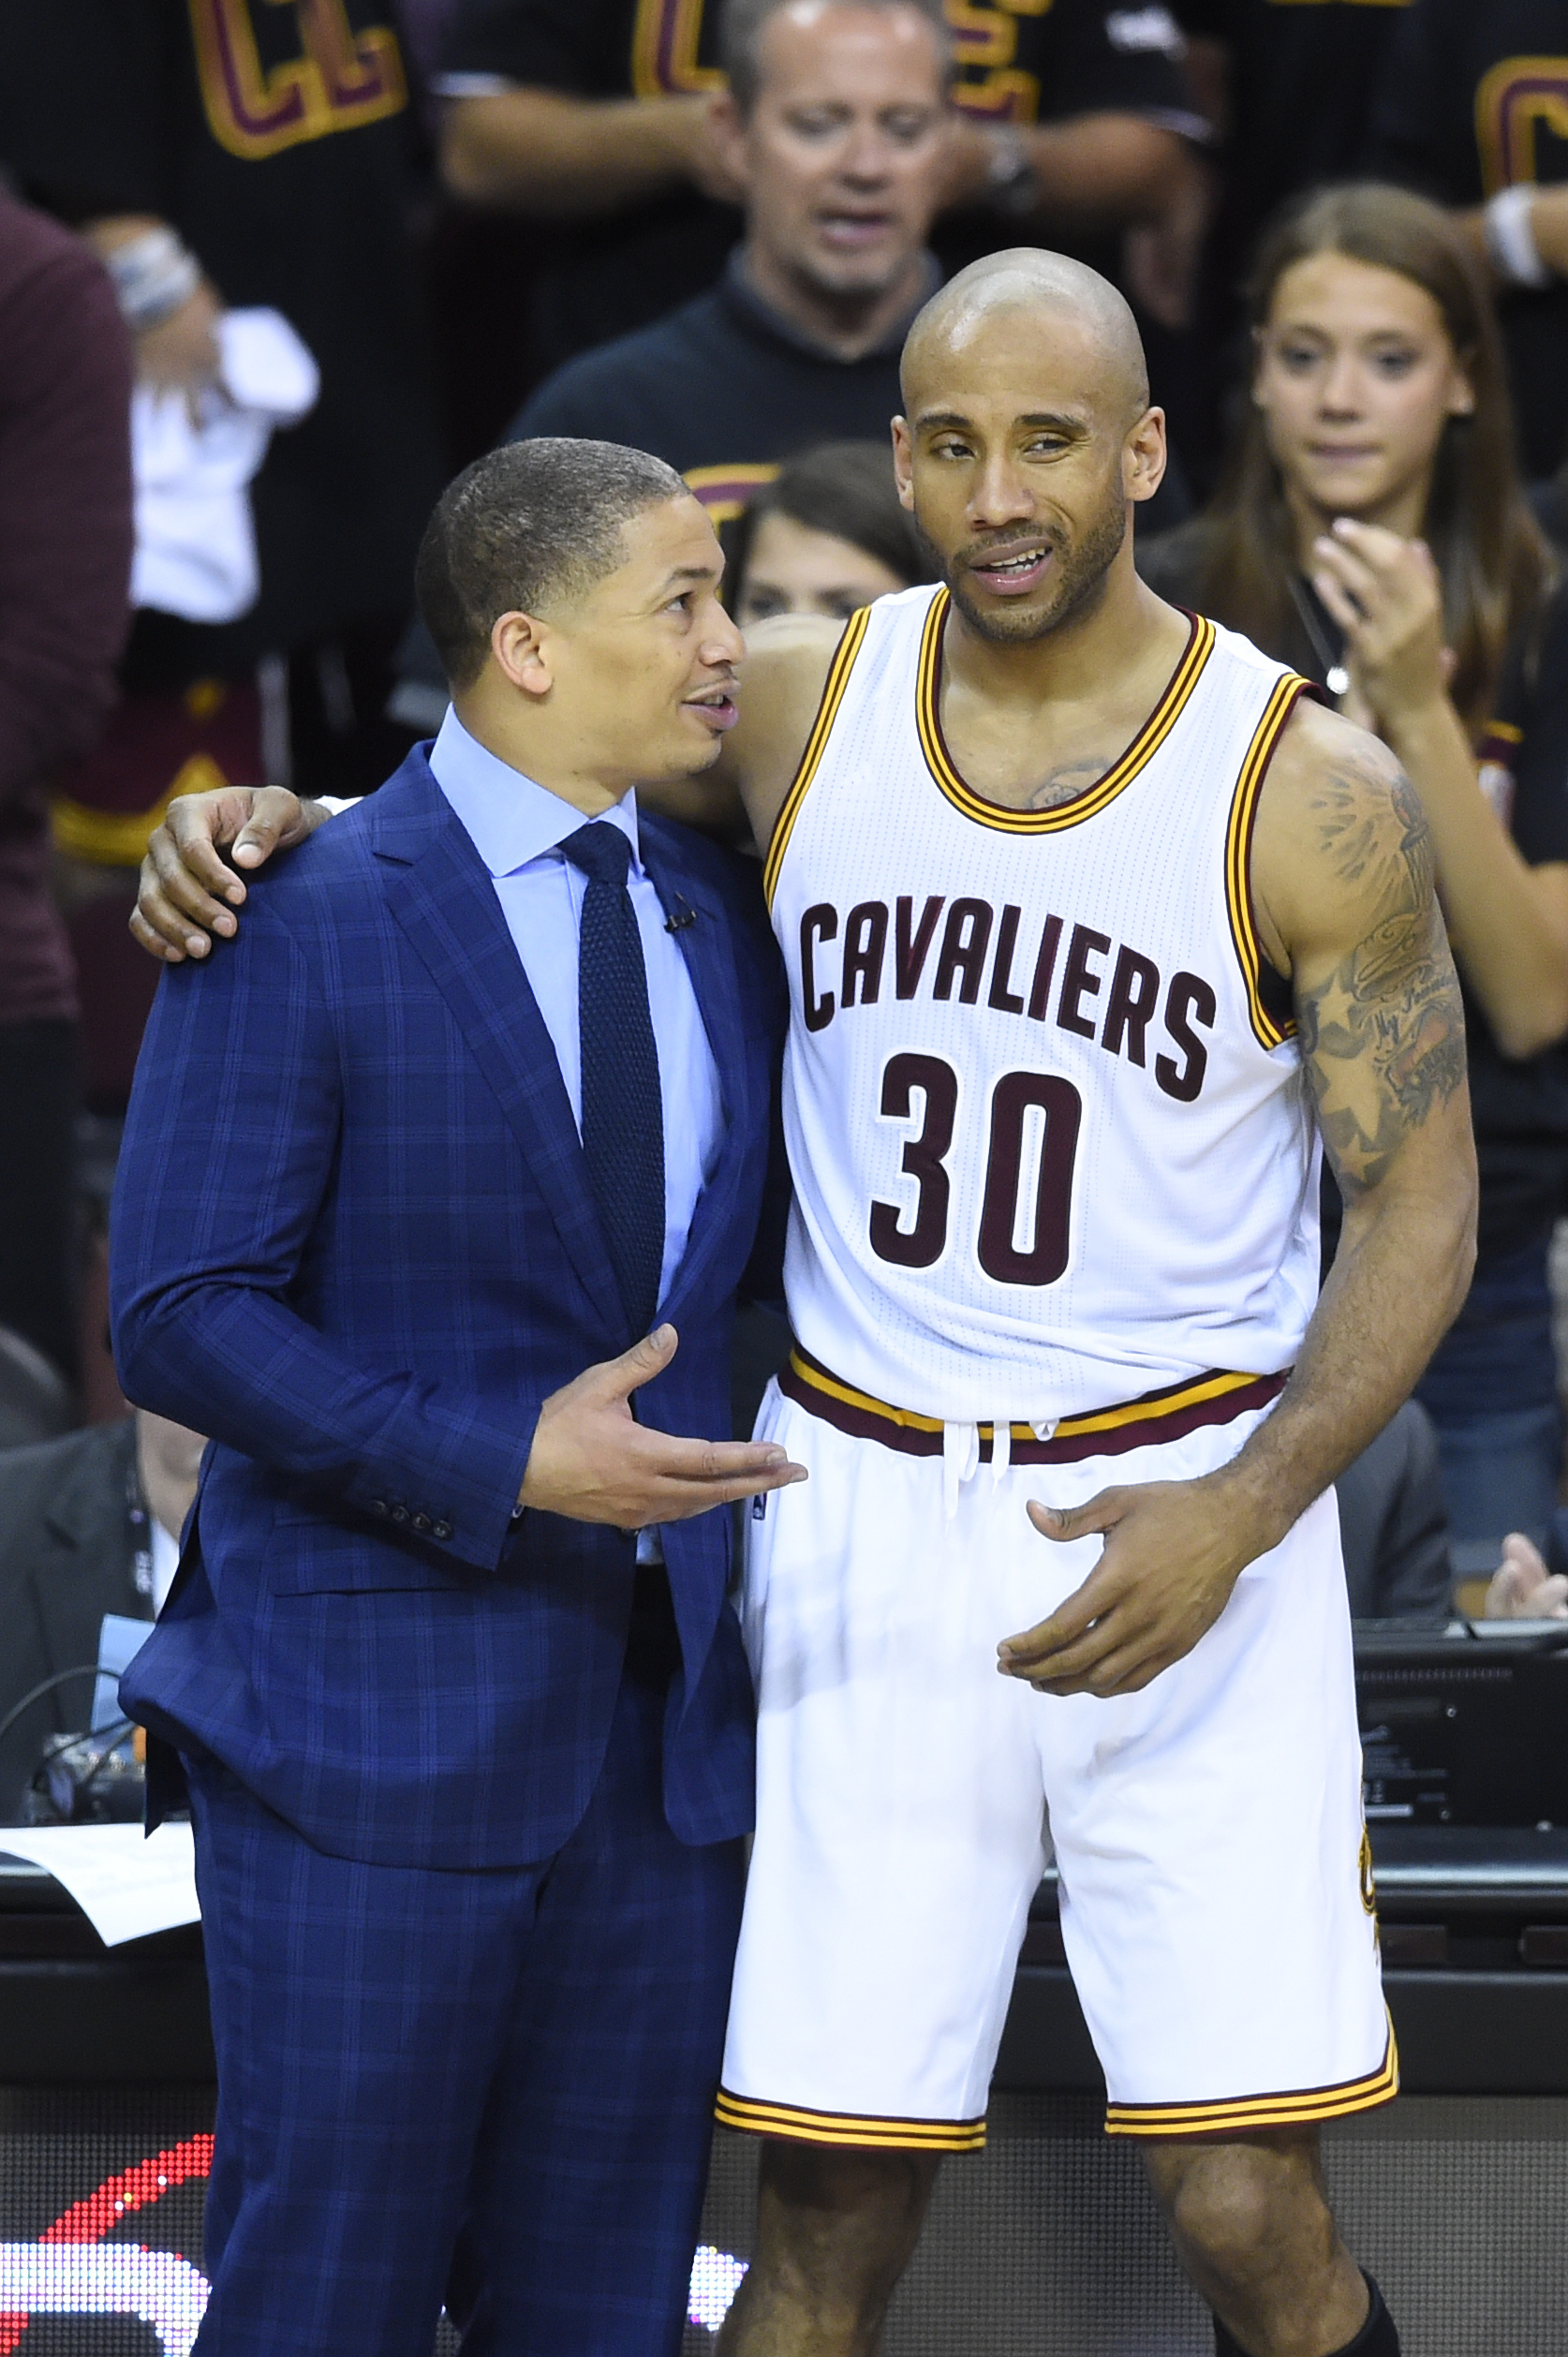 Why Was Dahntay Jones at The Ring Ceremony?